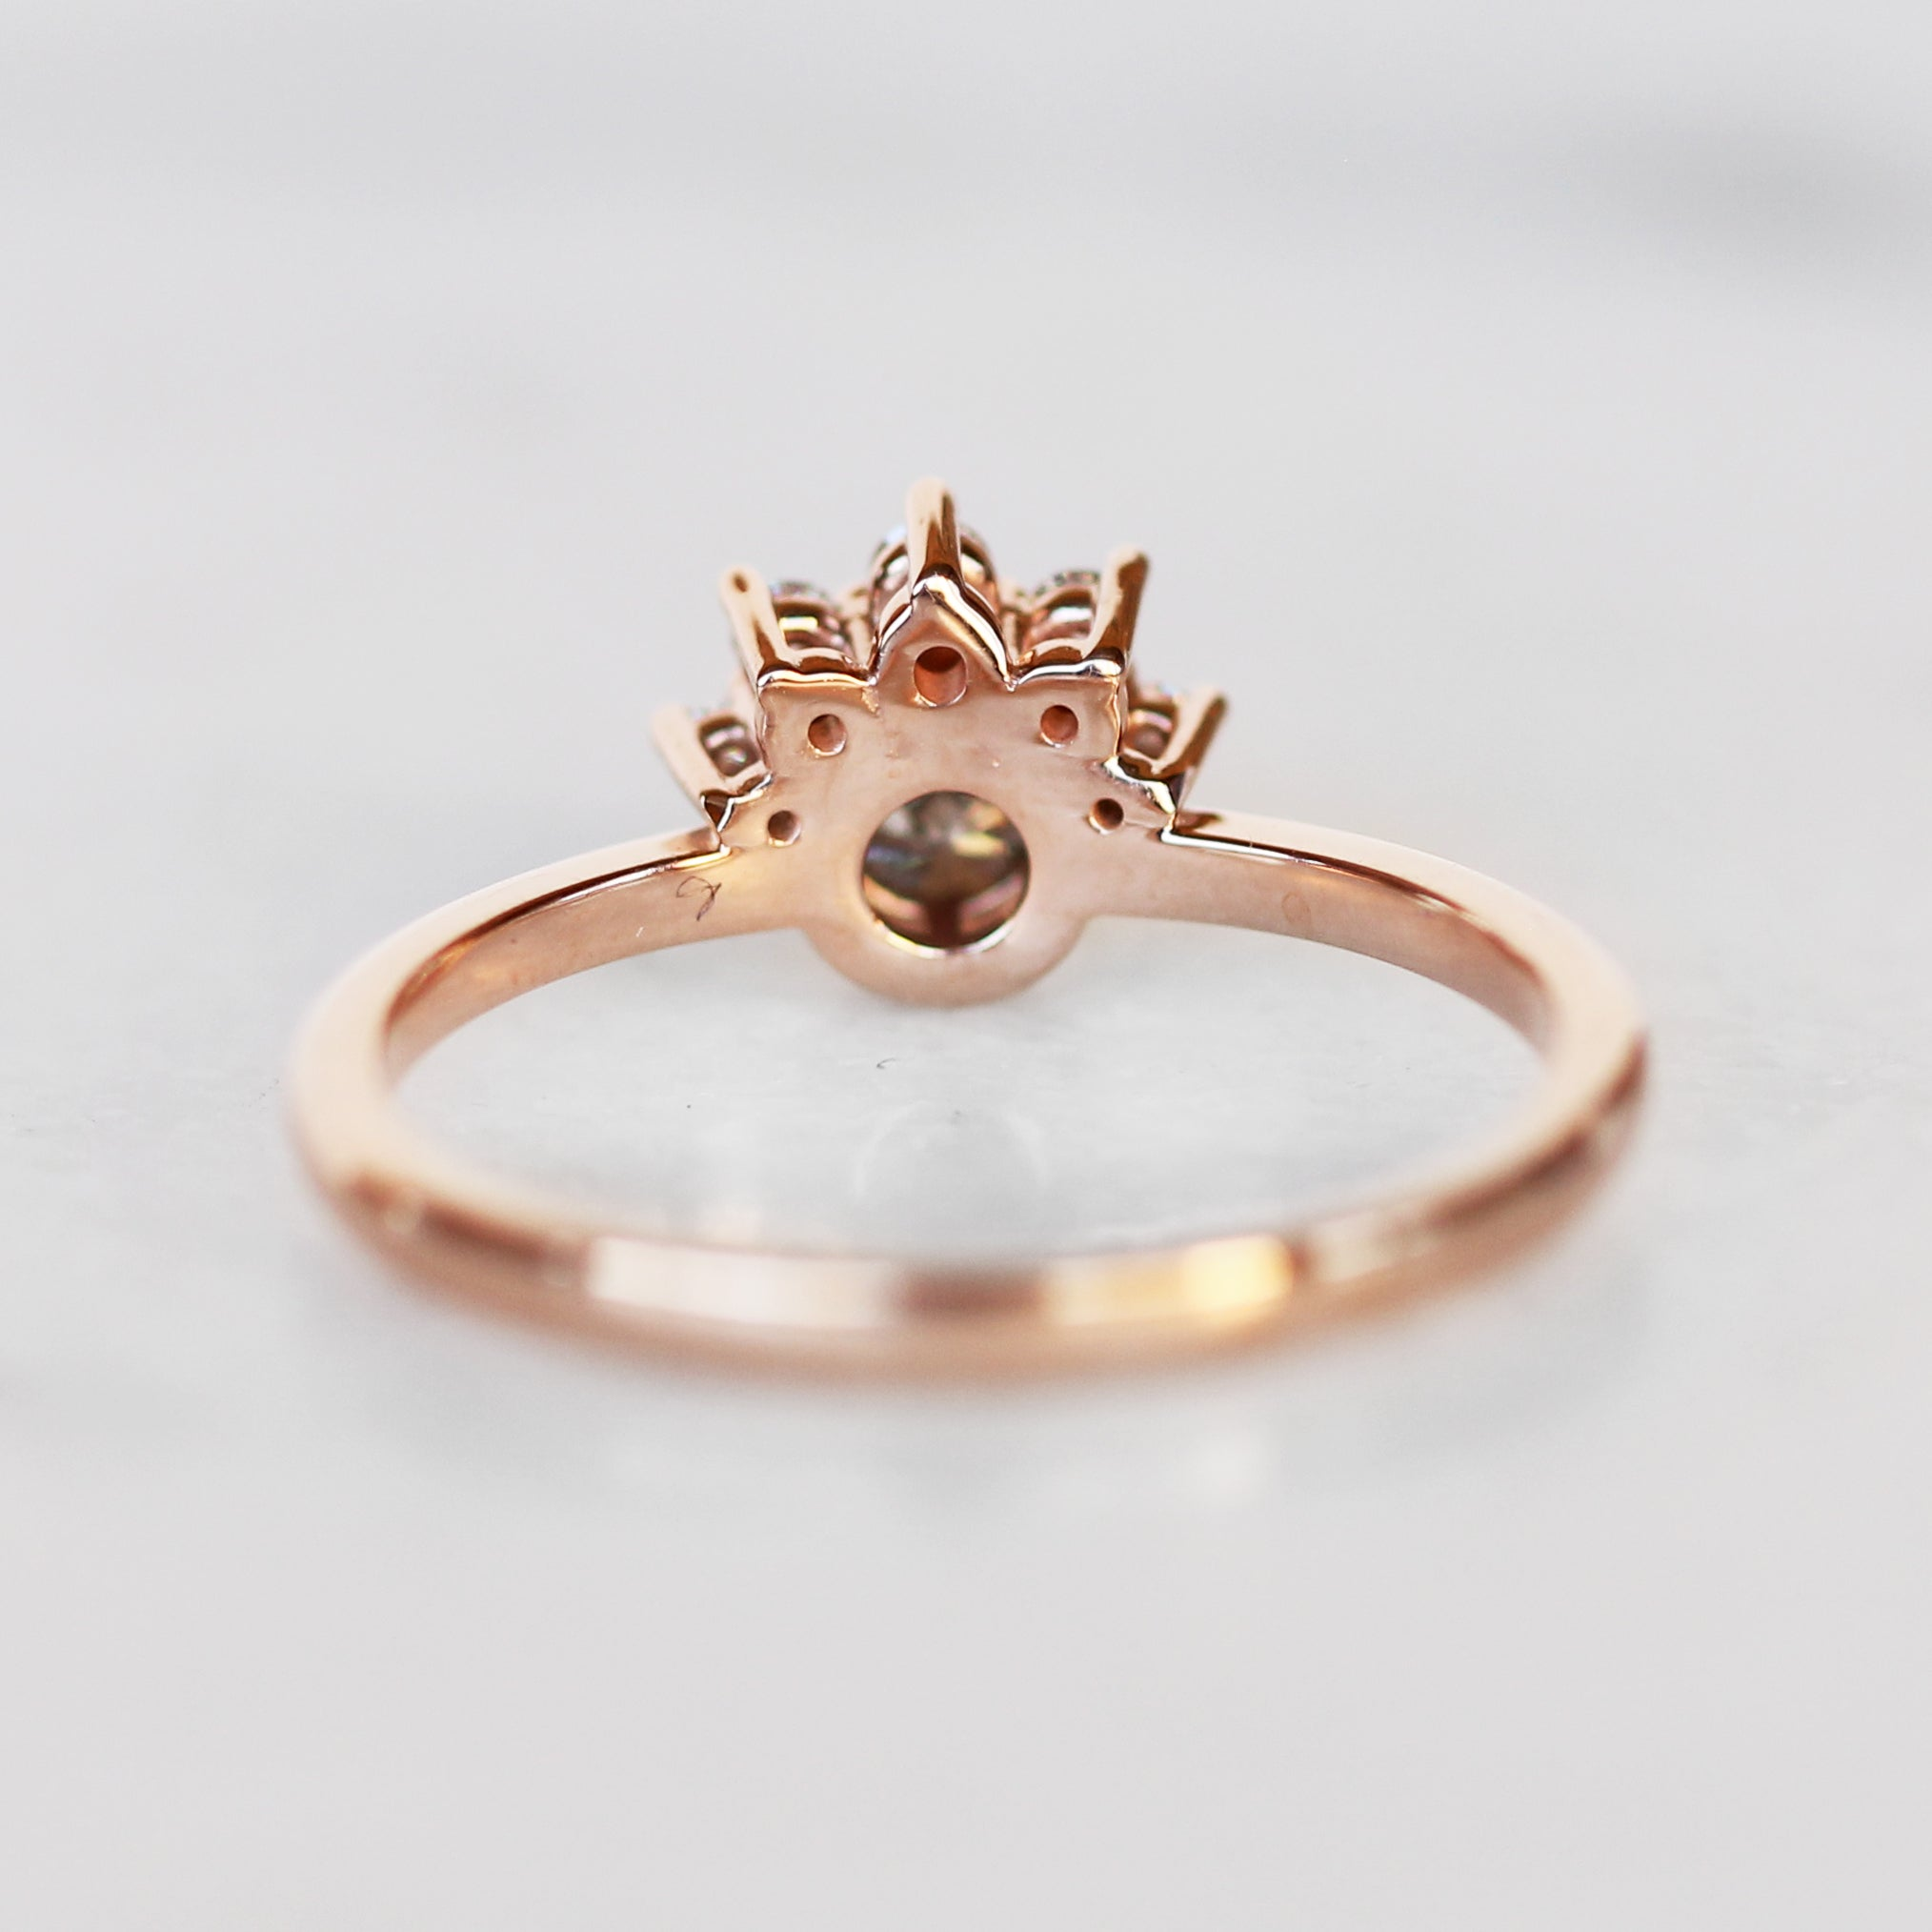 Ashlyn Ring with Light Gray Celestial Diamond in 10k Rose Gold - Ready to Size and Ship - Salt & Pepper Celestial Diamond Engagement Rings and Wedding Bands  by Midwinter Co.